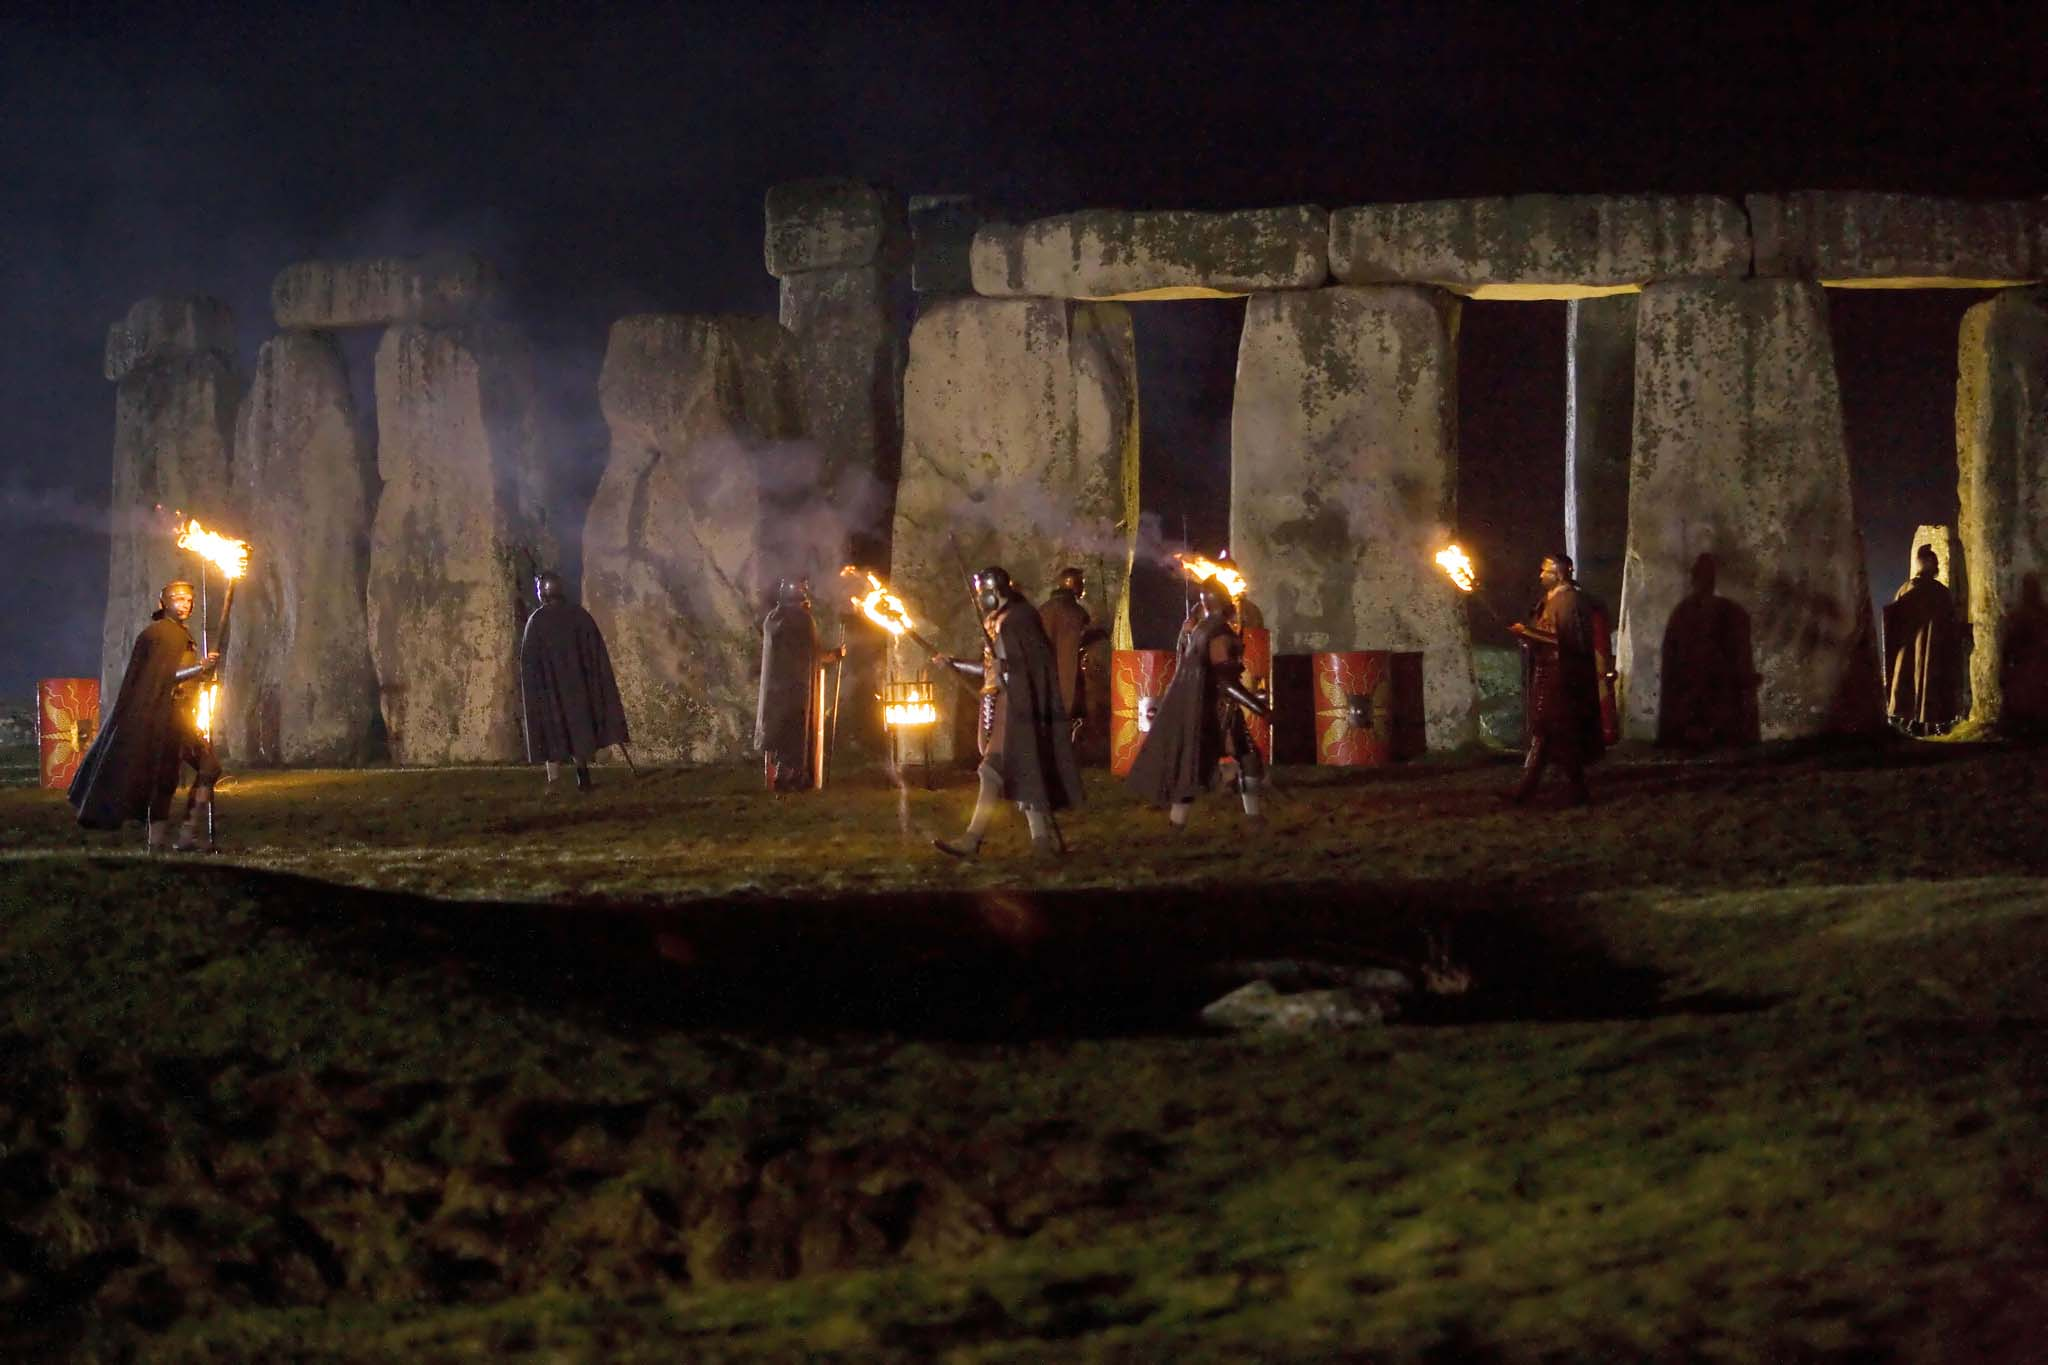 Fall In Love Again Wallpapers Doctor Who Tv Series 5 Story 212 The Pandorica Opens The